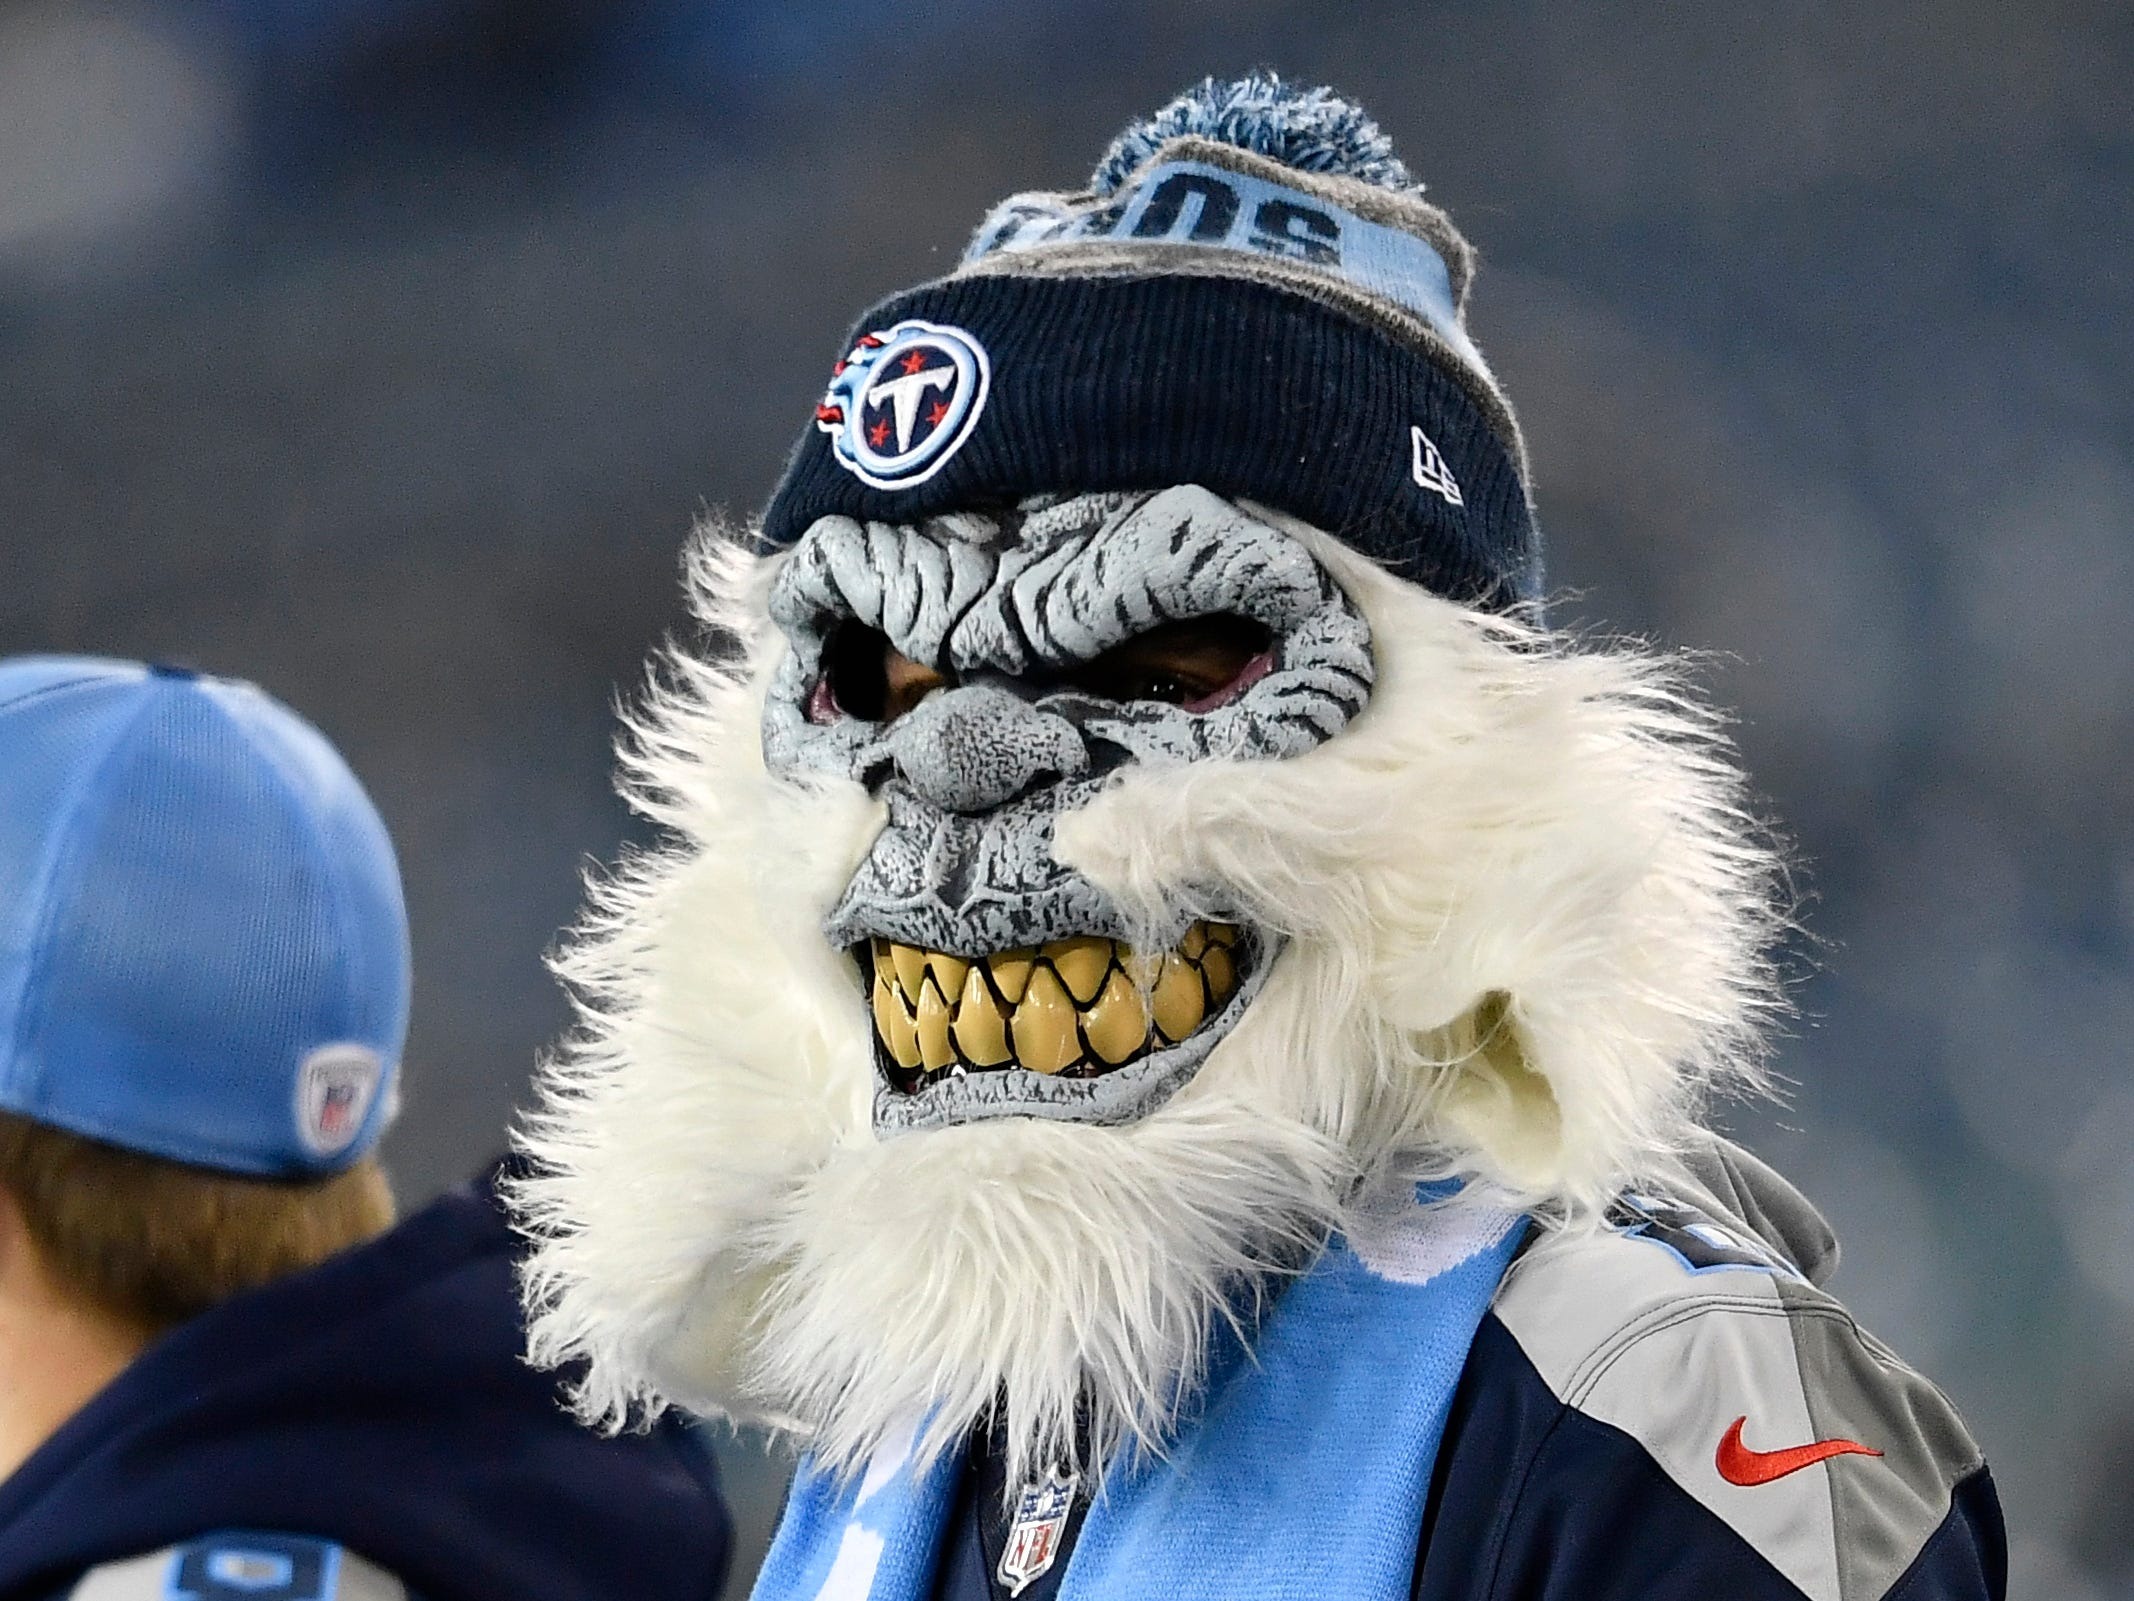 A Titans fan watches warmups before the game at Nissan Stadium Thursday, Dec. 6, 2018, in Nashville, Tenn.